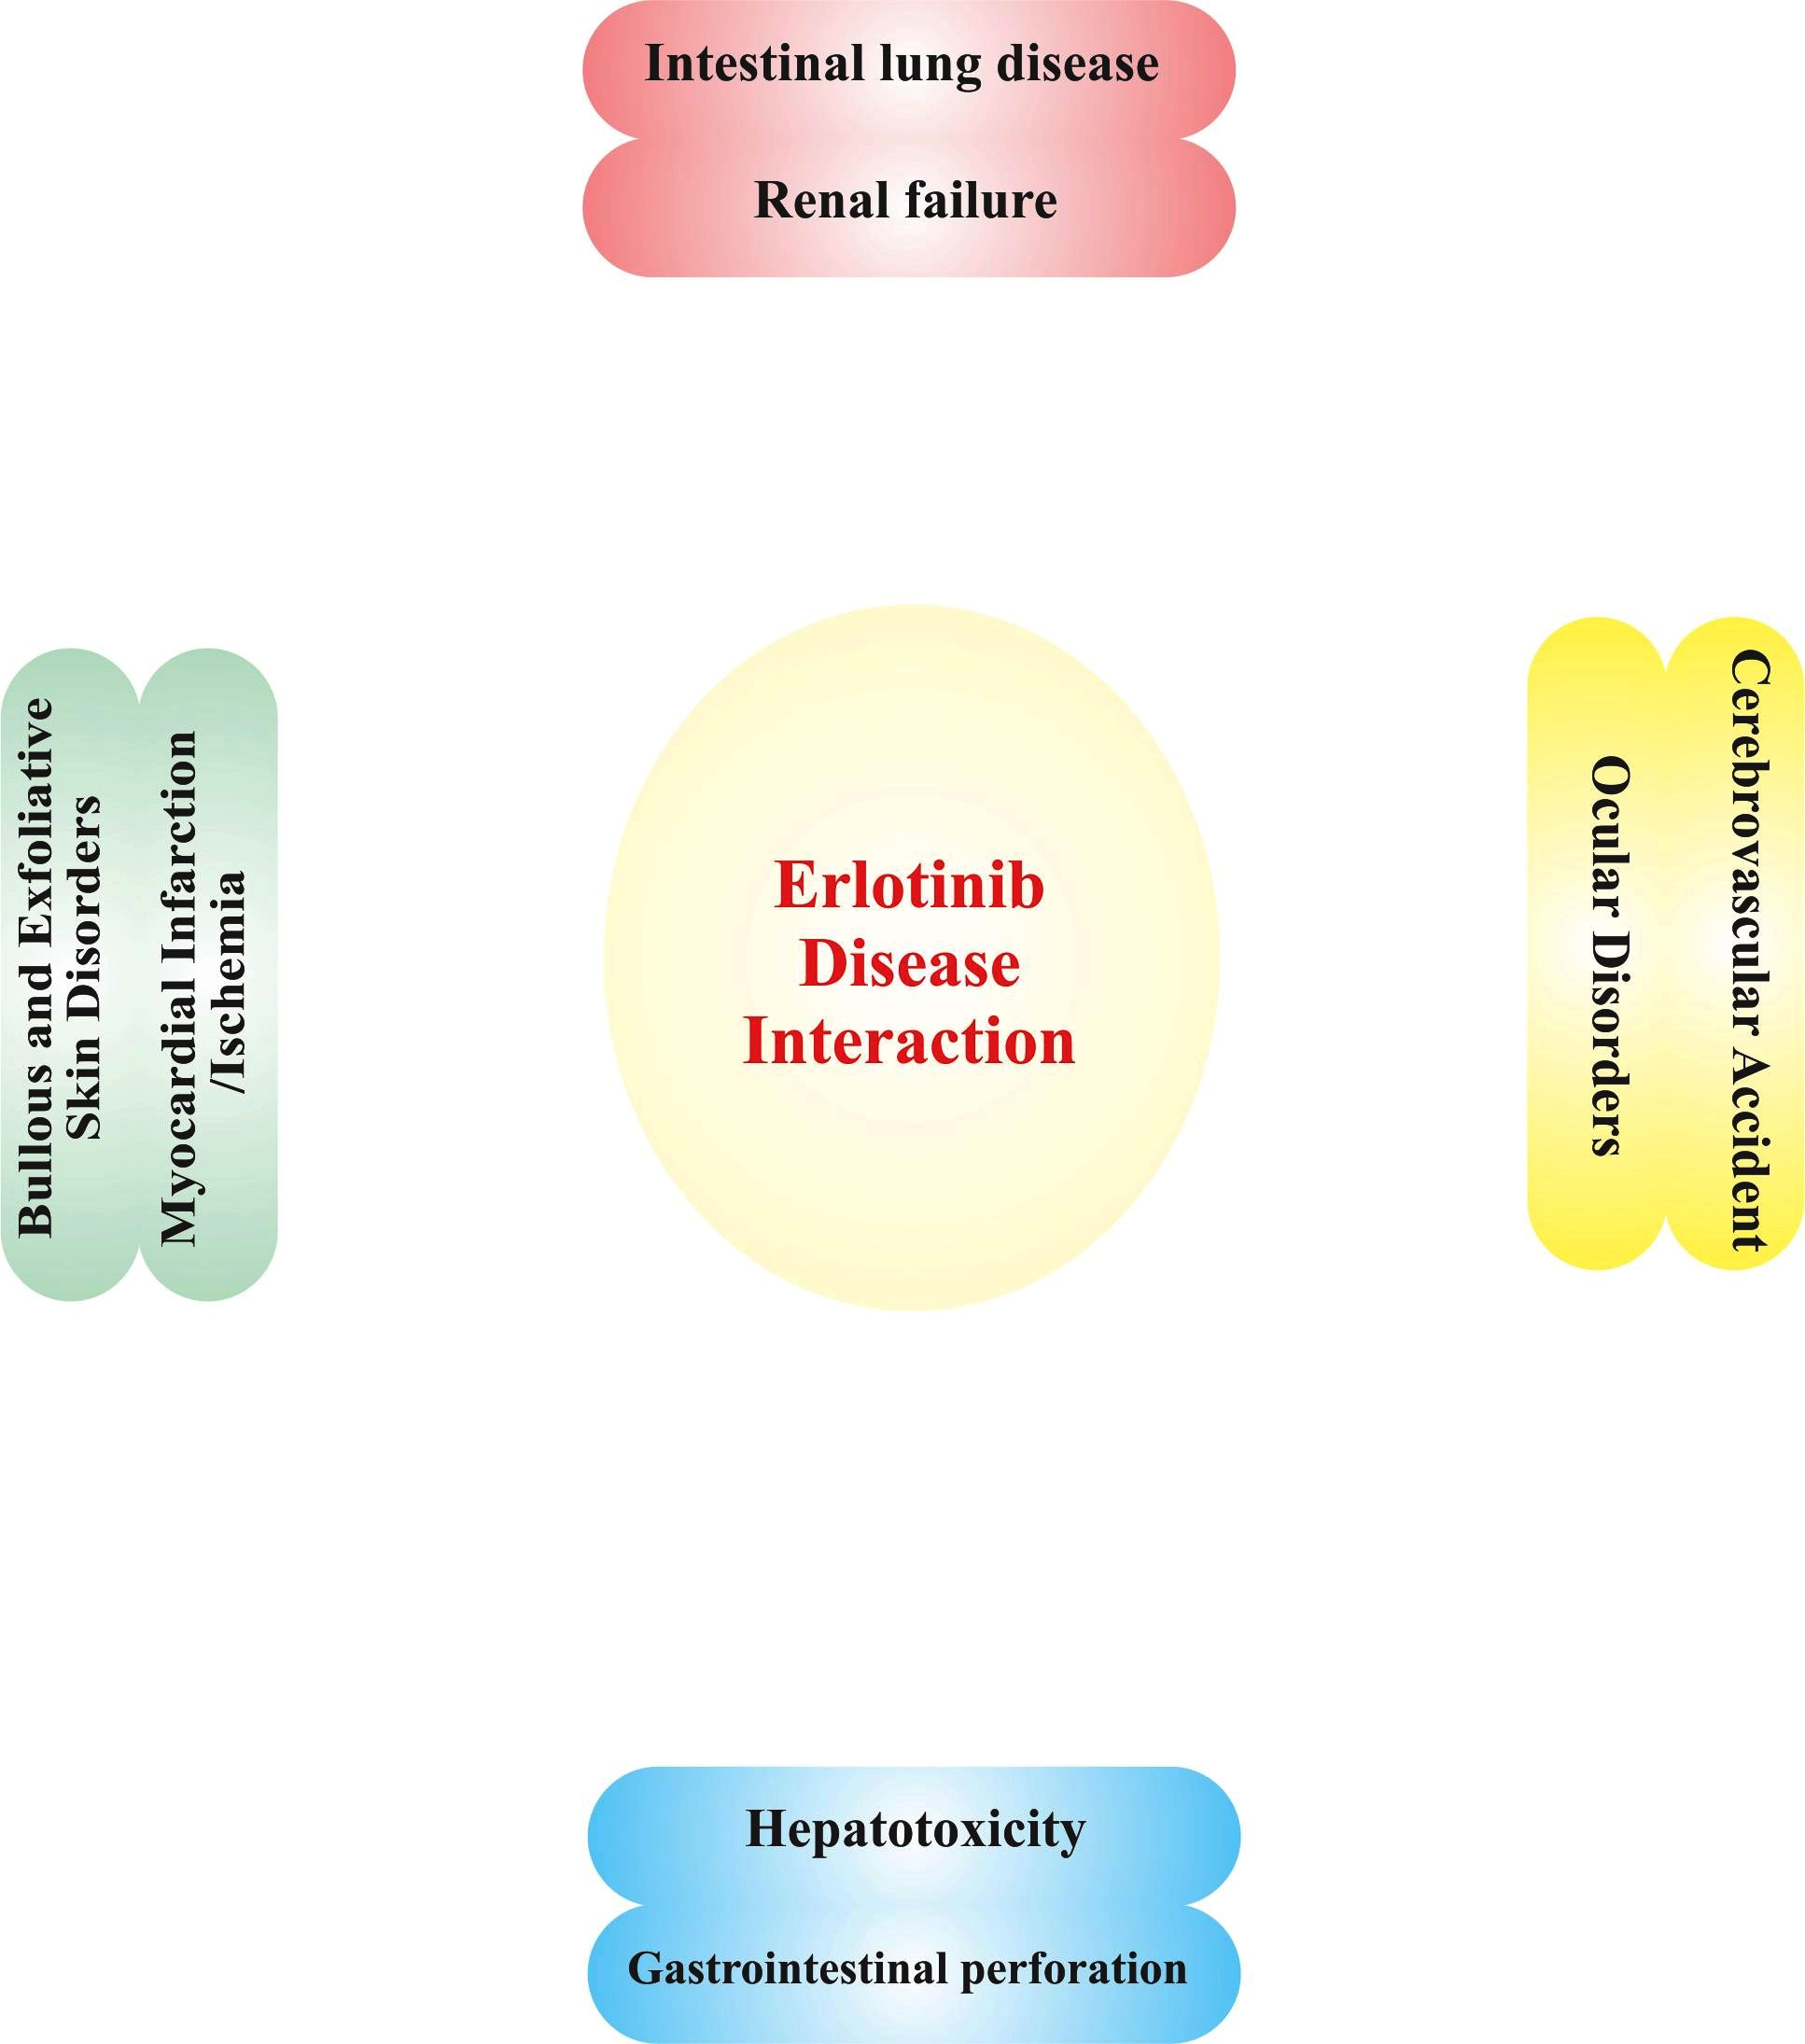 Erlotinib disease interaction